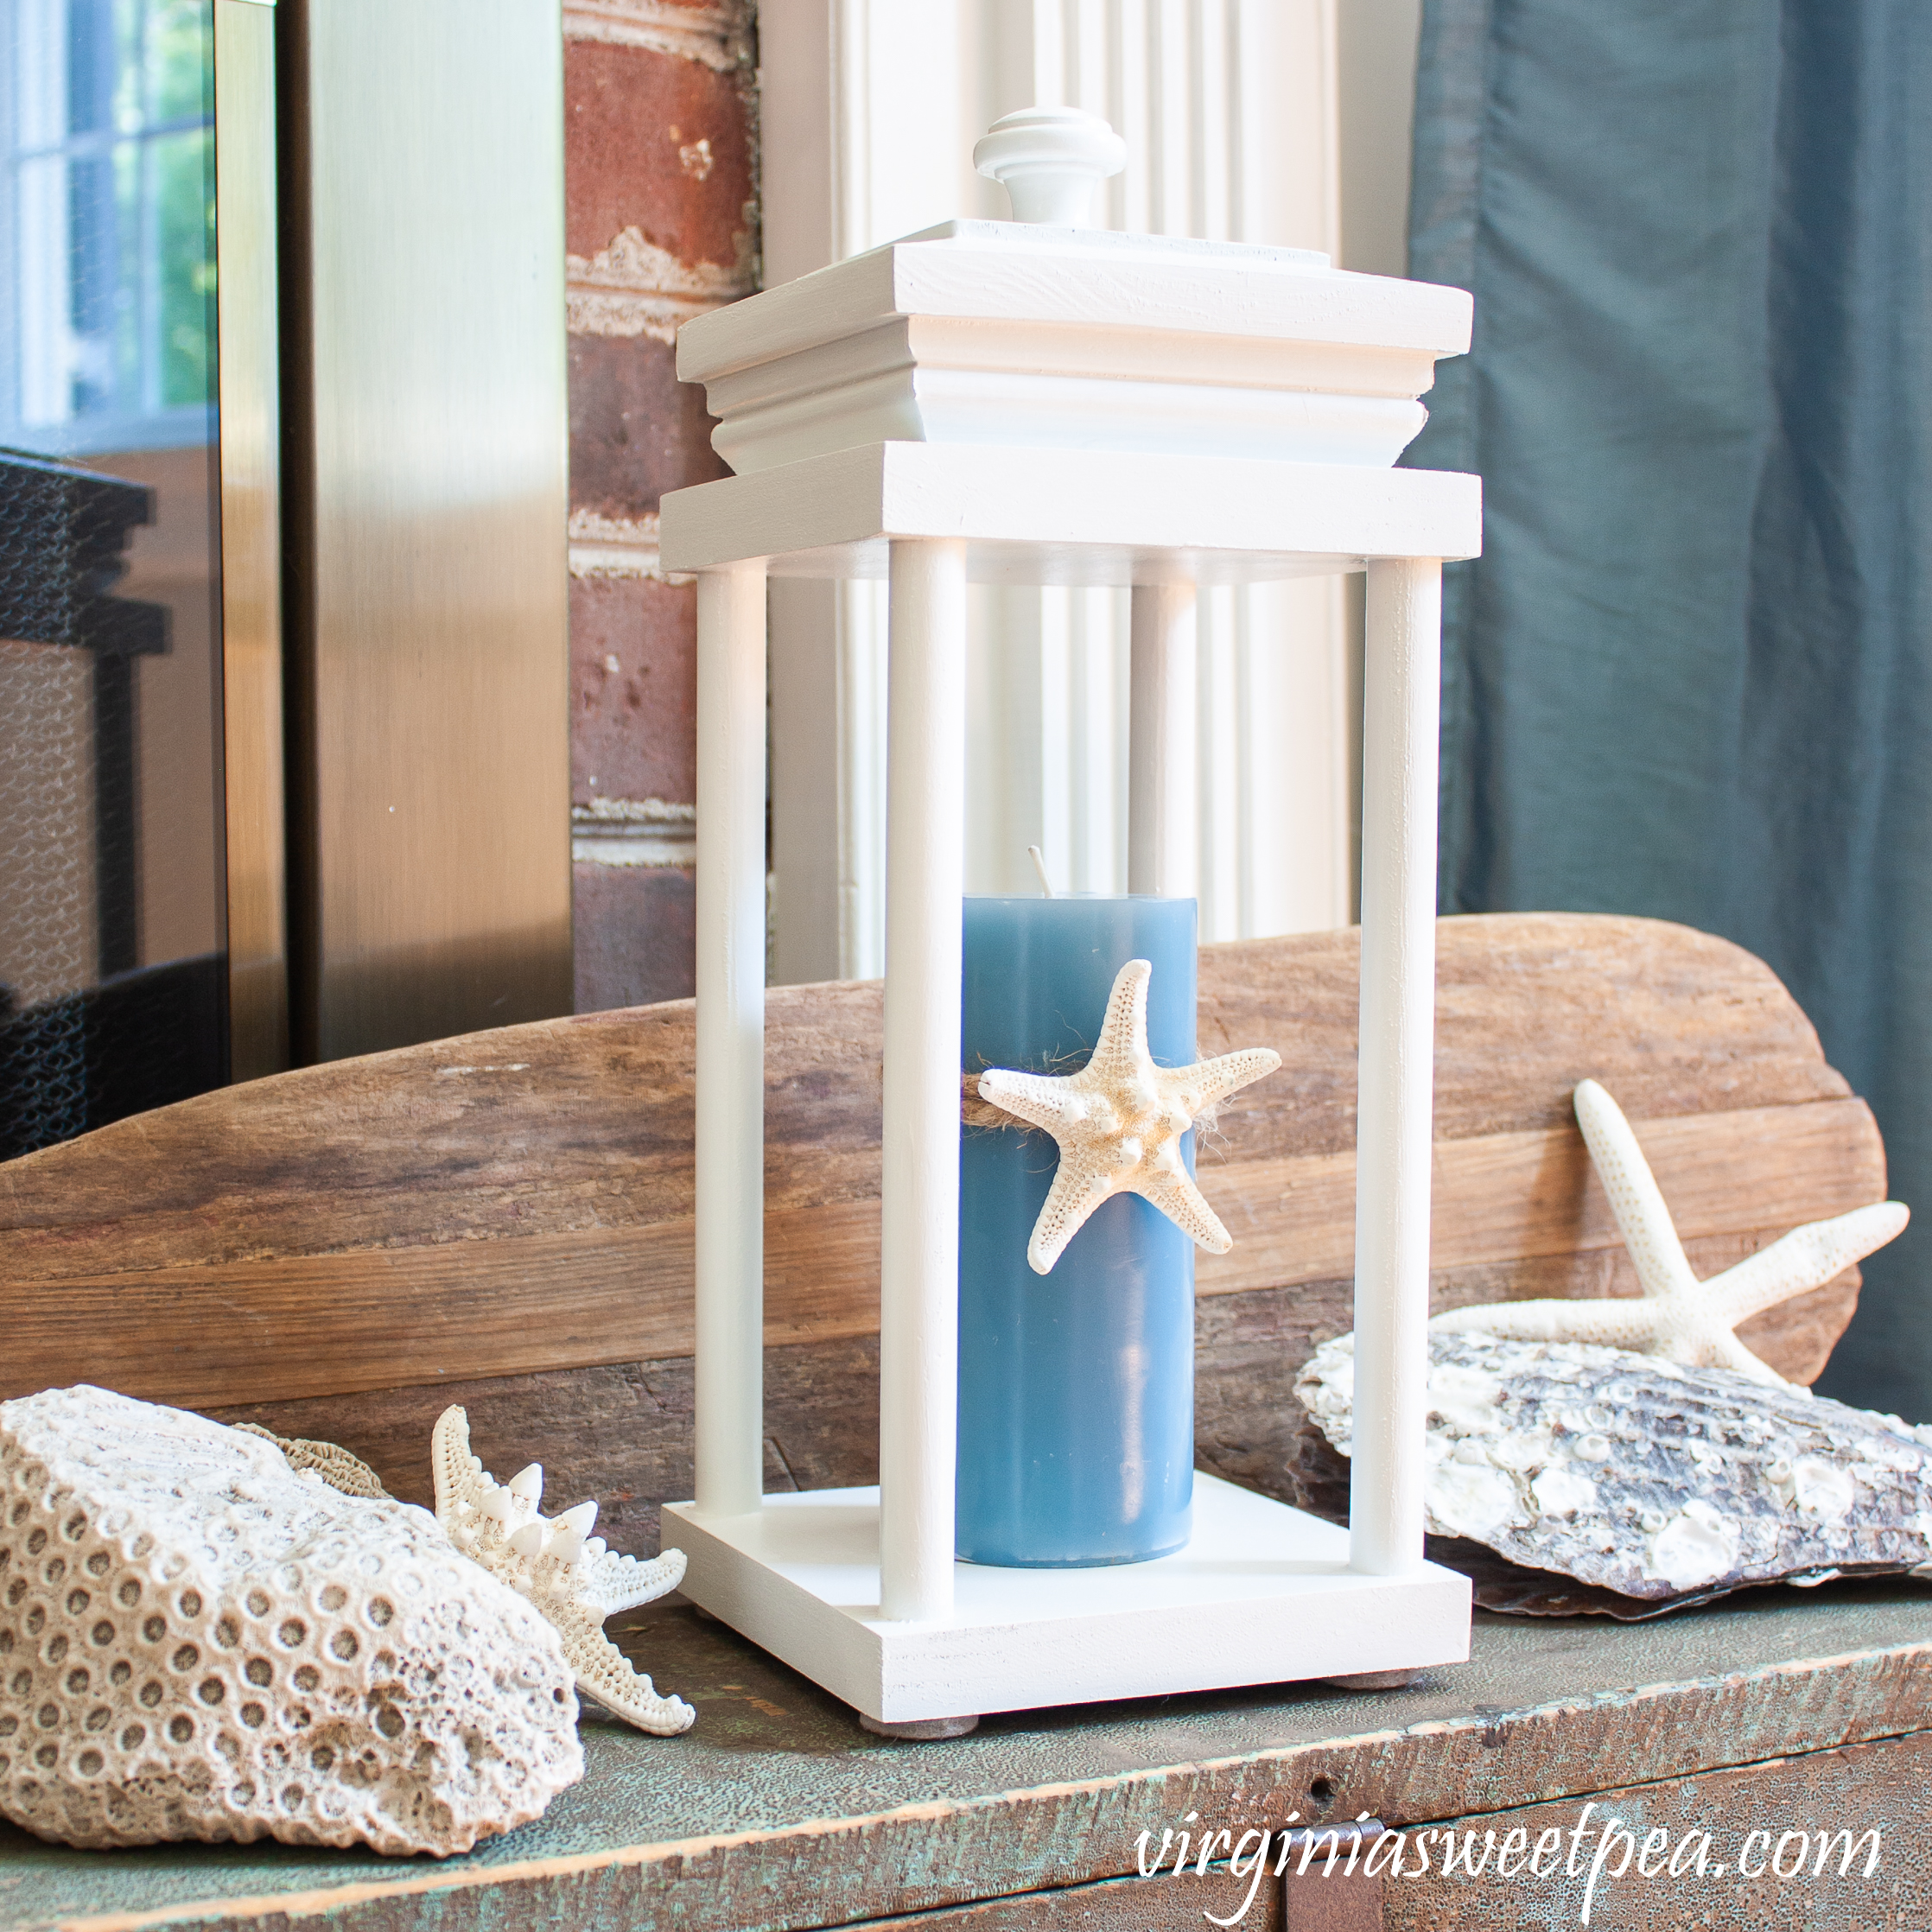 How to use a lantern for summer coastal decor